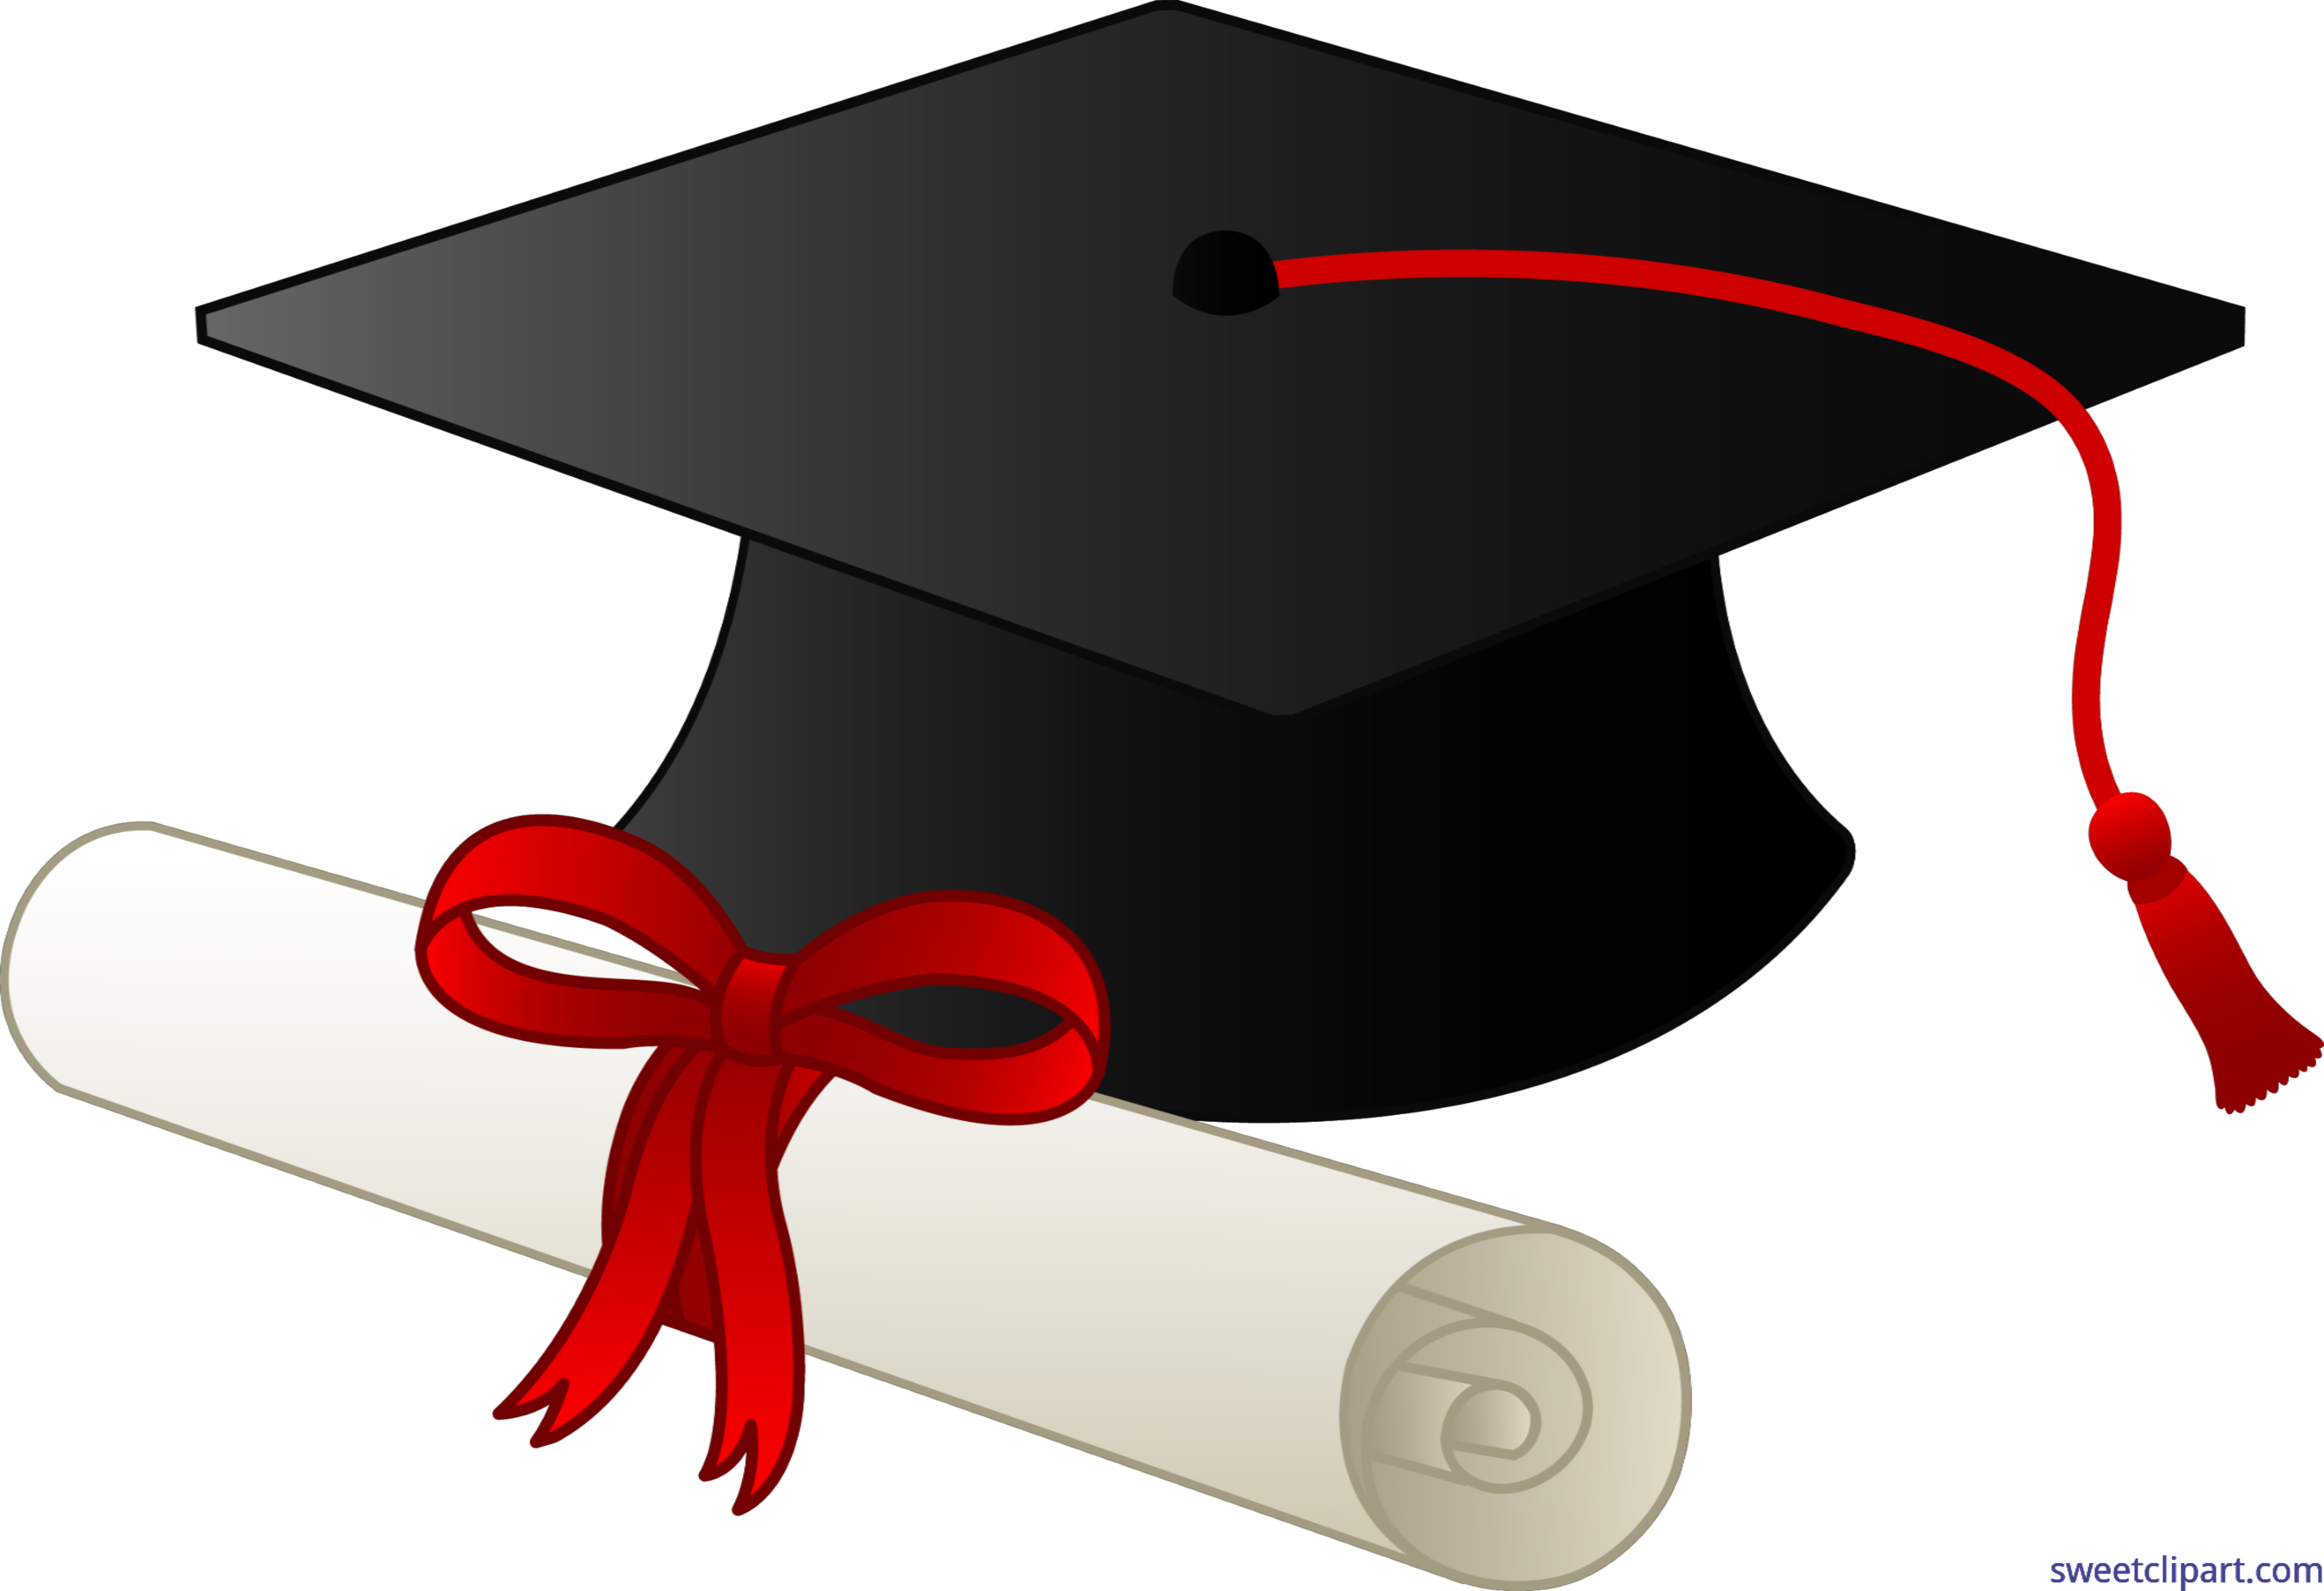 High school diploma clipart banner freeuse download Graduation Cap And Diploma Clip Art - Sweet Clip Art banner freeuse download